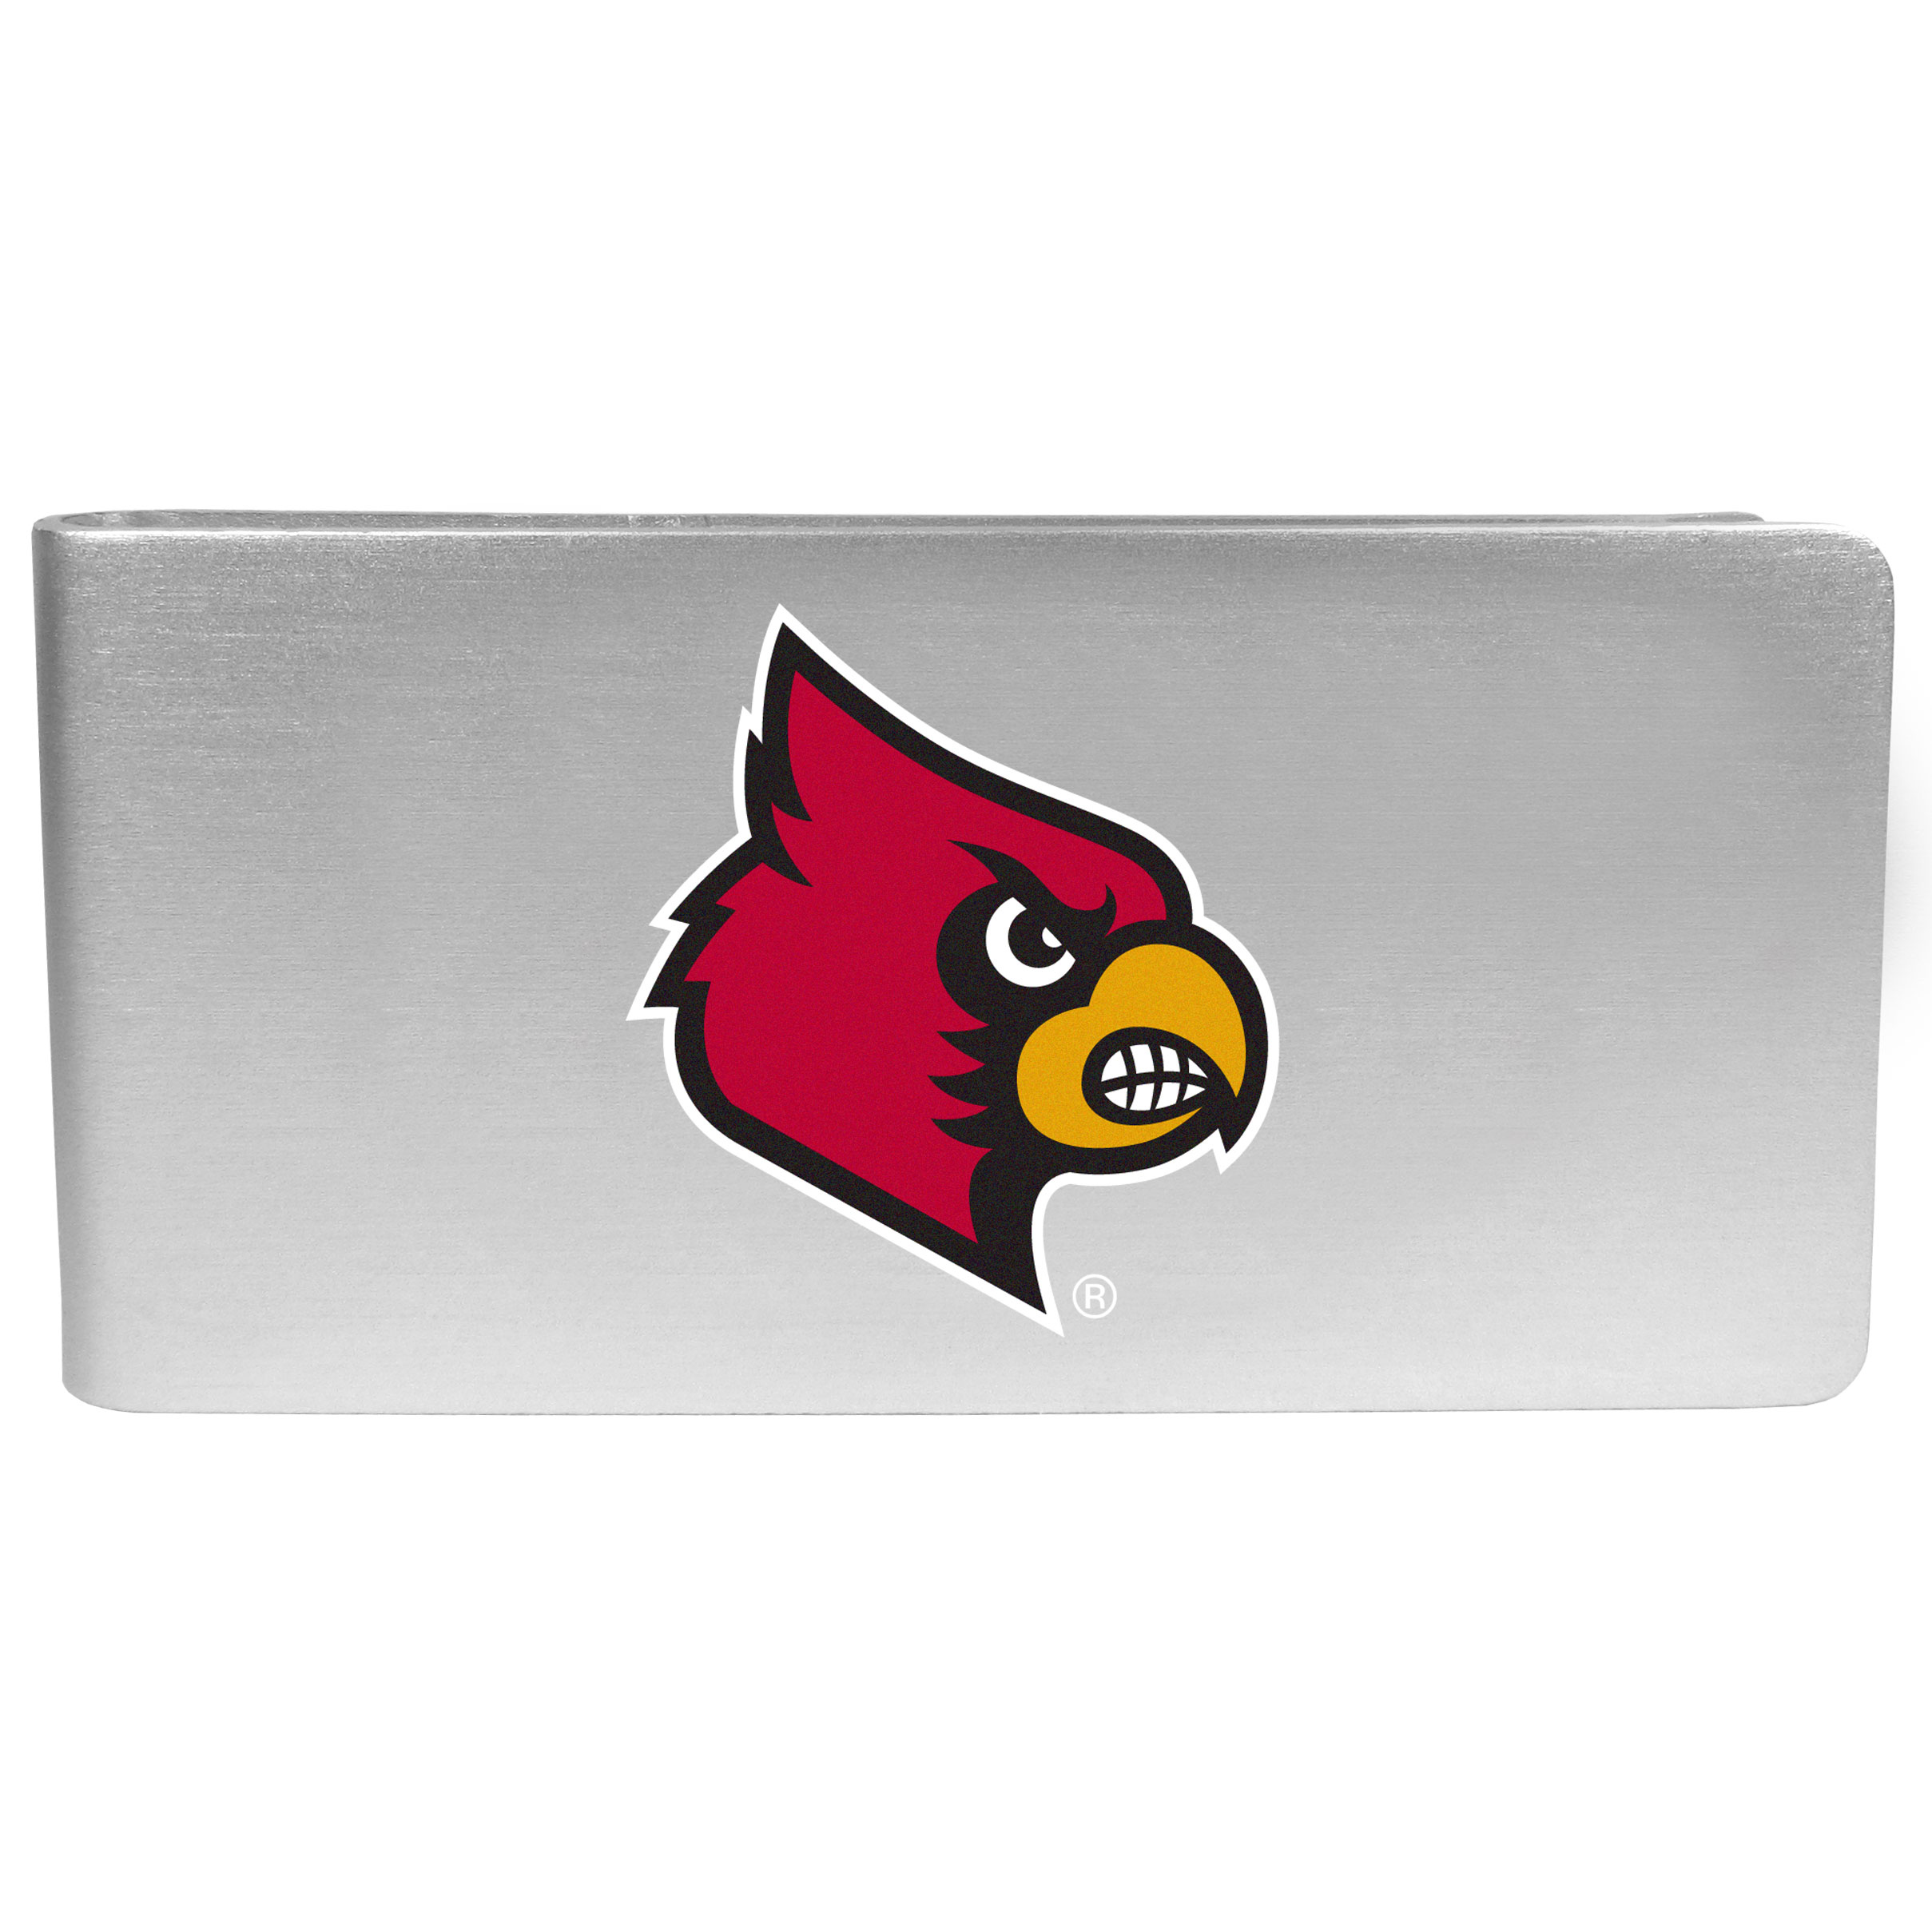 Louisville Cardinals Logo Money Clip - Our brushed metal money clip has classic style and functionality. The attractive clip features the Louisville Cardinals logo expertly printed on front.